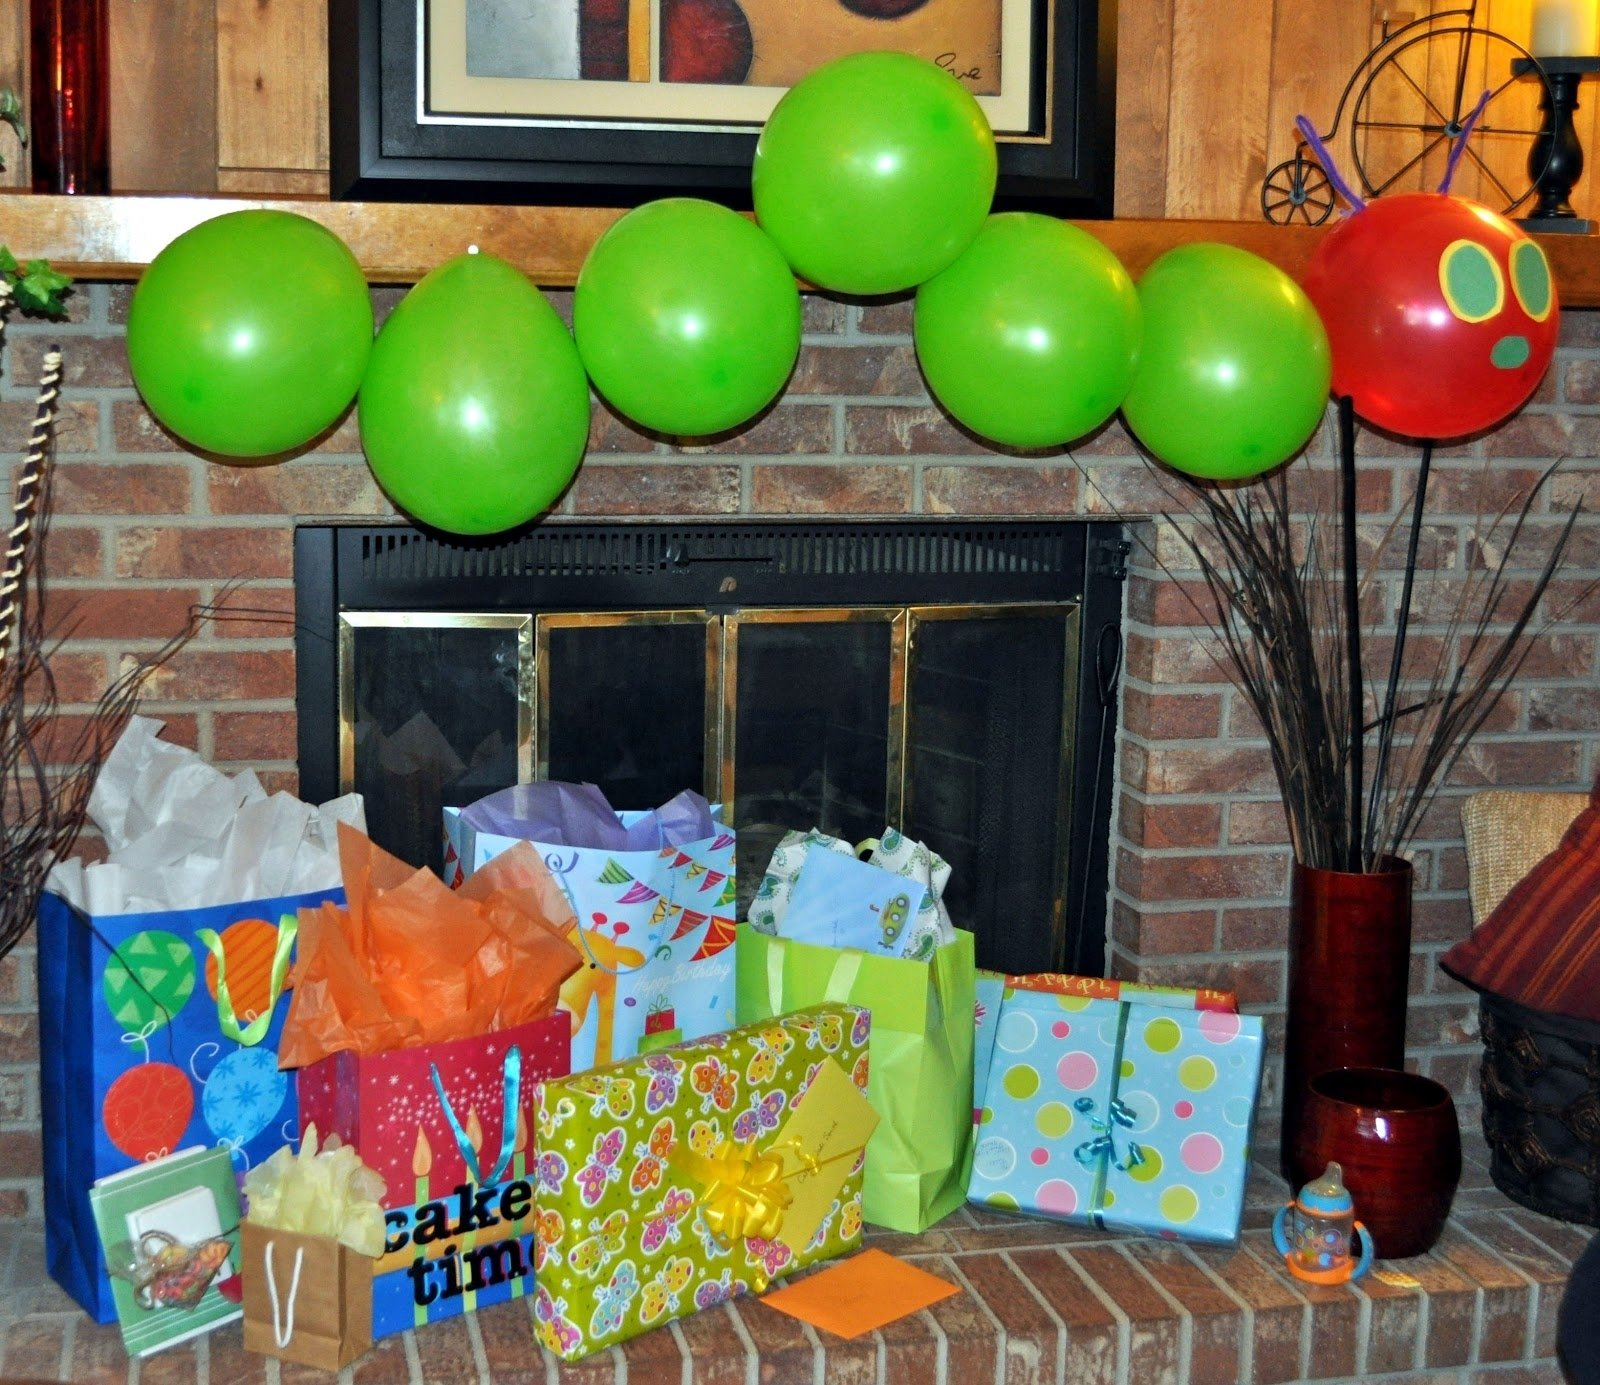 10 Attractive The Very Hungry Caterpillar Party Ideas the very hungry caterpillar party bless this mess 2020